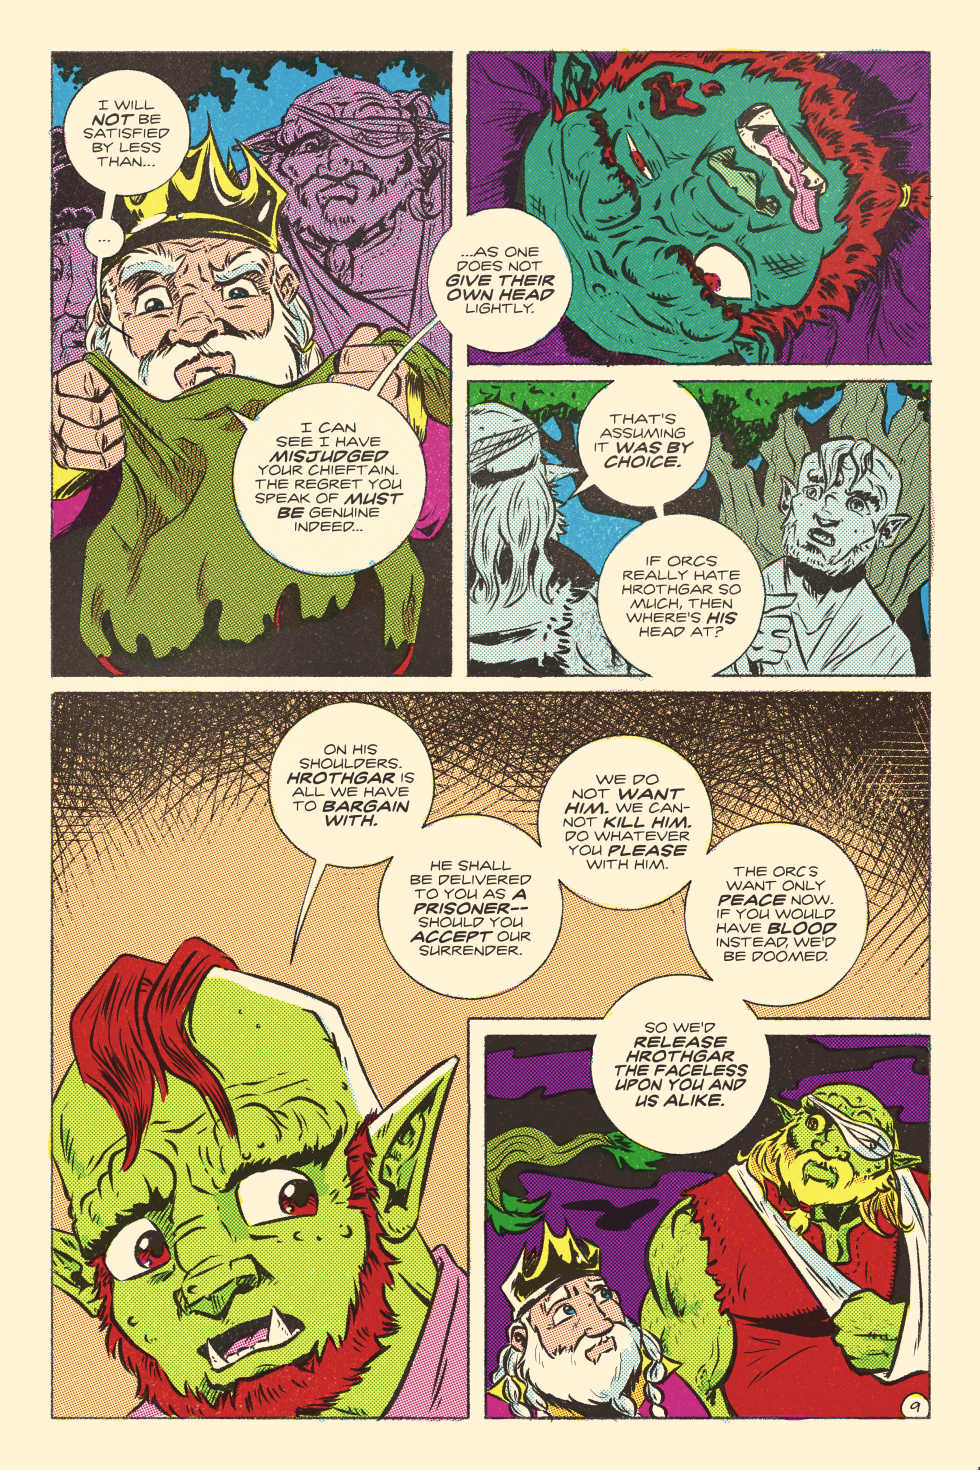 #315 – The Orcs' Terms